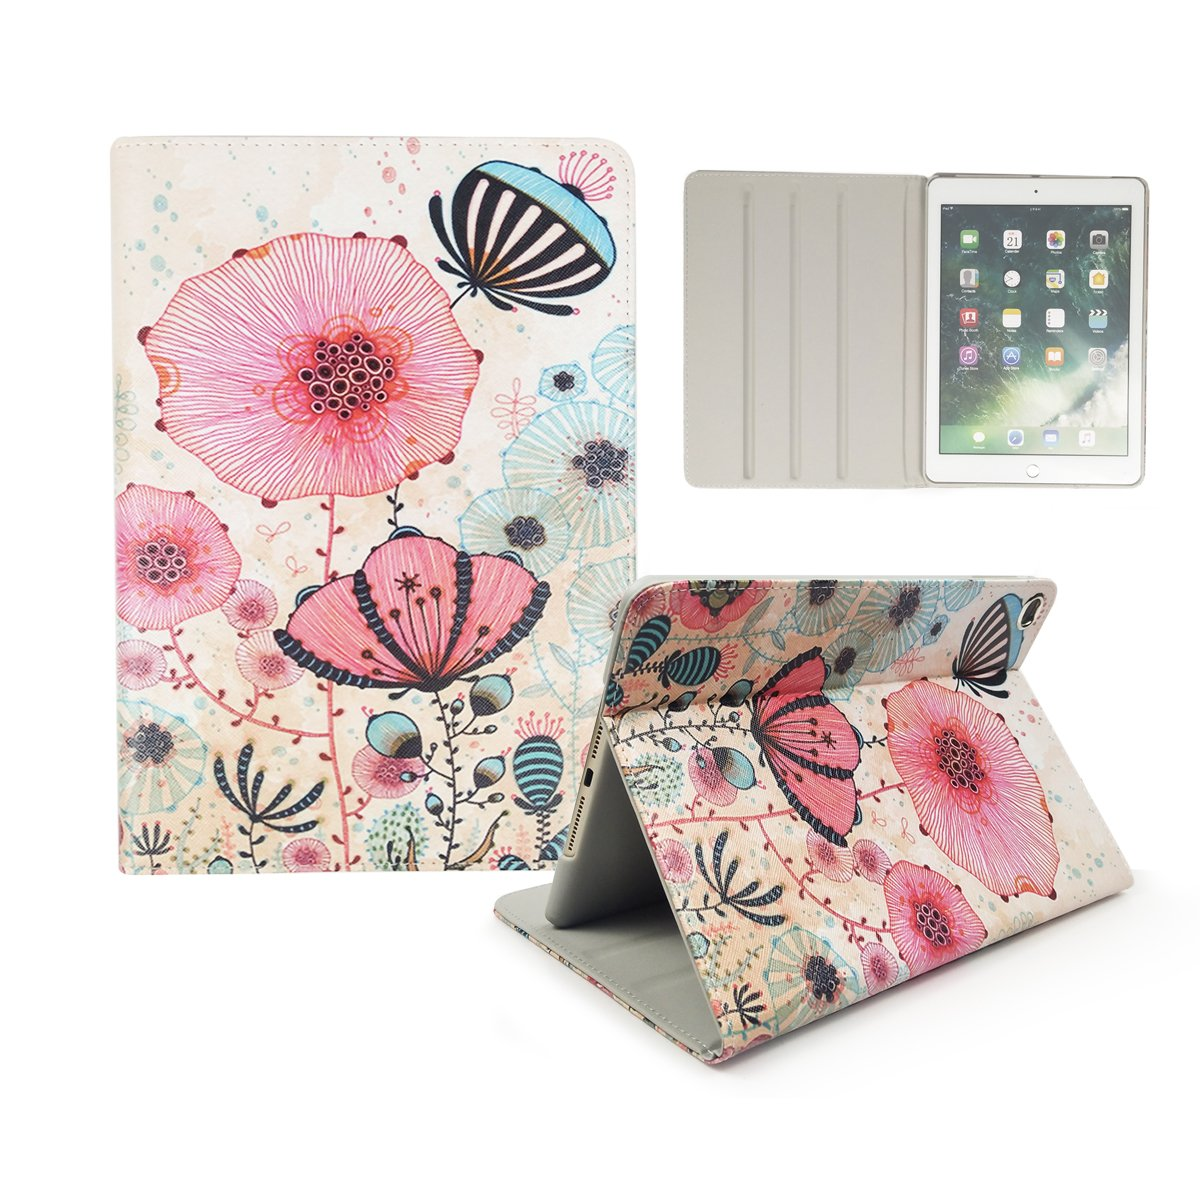 iPad Air 2/iPad Air/iPad 9.7'' 2017 Covers, Hybrid Leather [Kickstand] [Multi-angle Viewing] Cover with PC Inner Protective Case for Apple iPad 9.7 2017/iPad Air 1&2 (iPad 5&6), Colorful Lotus